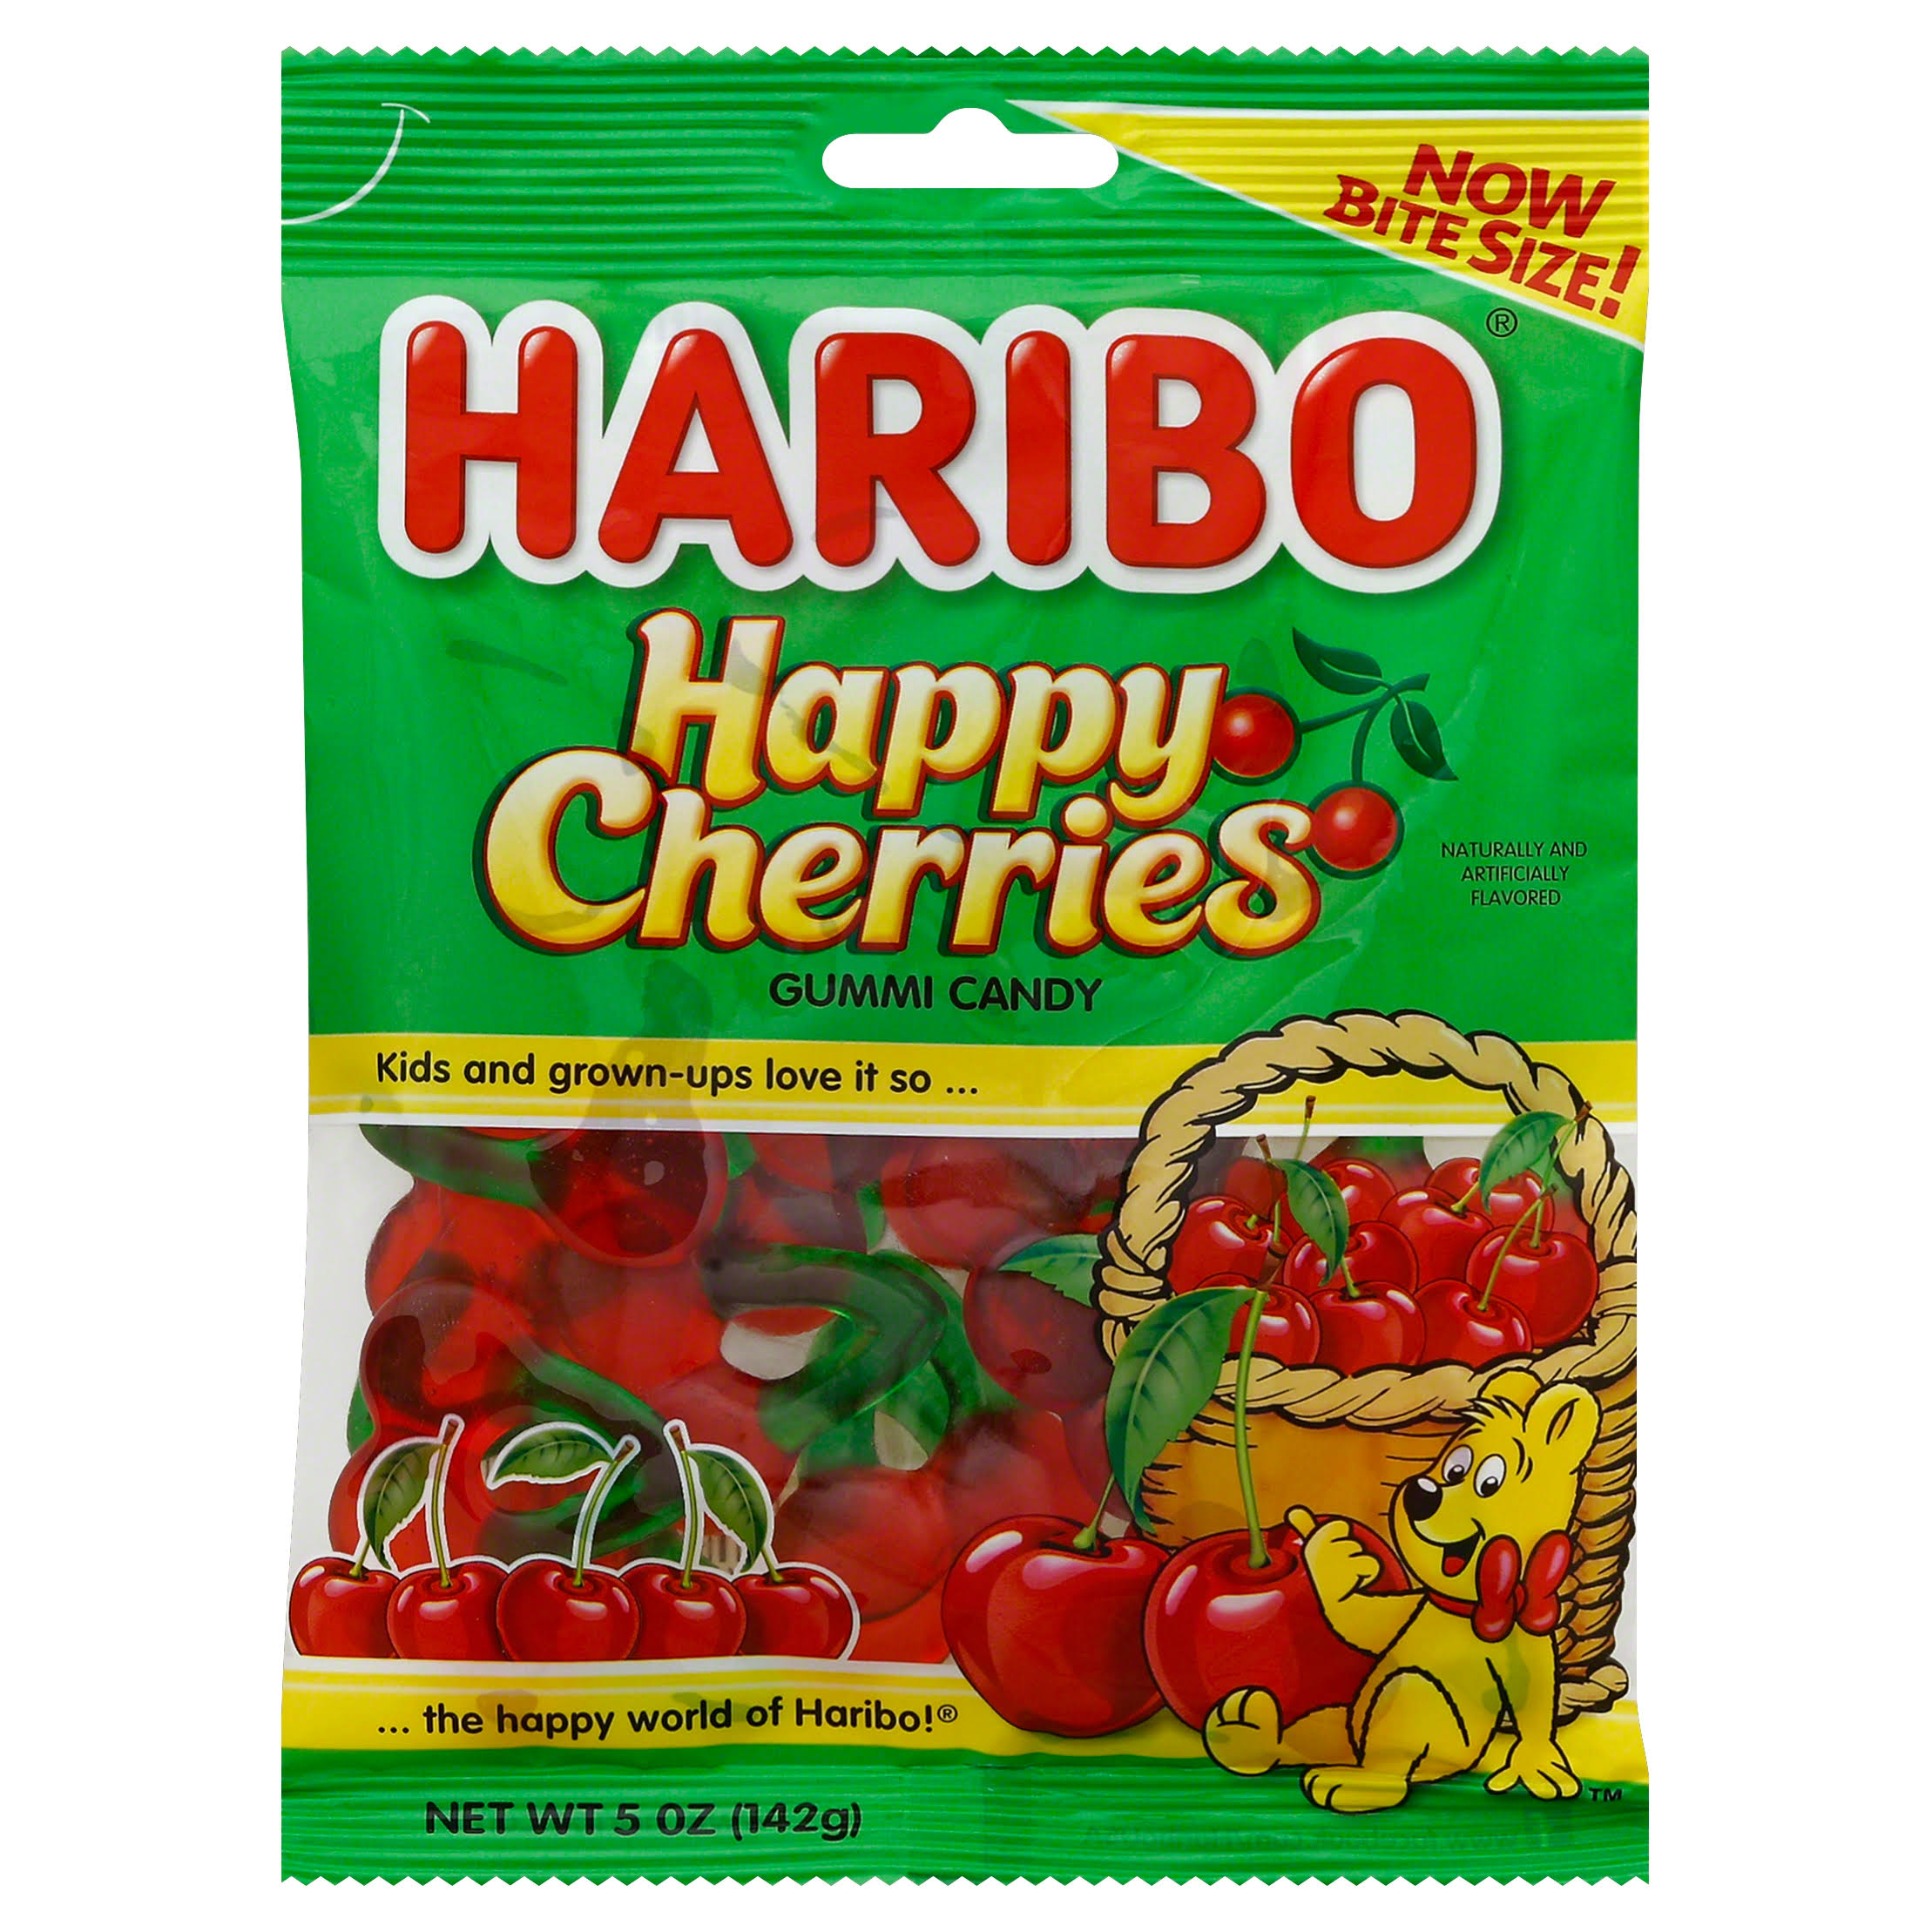 Haribo Gummi Candy - Twin Cherries, 142g